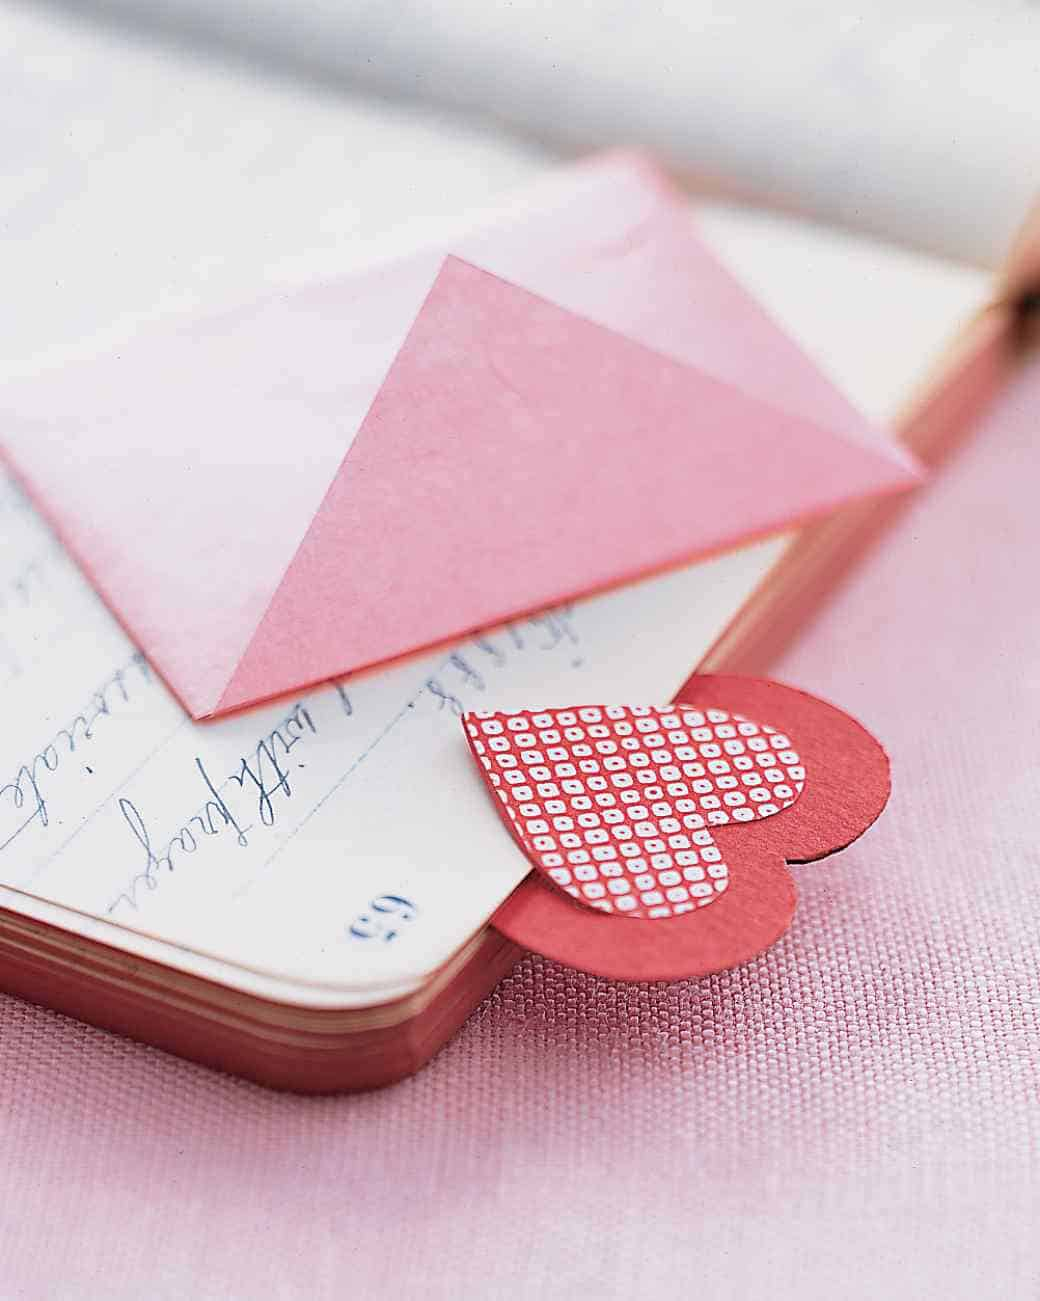 Awesome valentine construction paper crafts Handmade Valentine Gifts For Parents Simplycircle